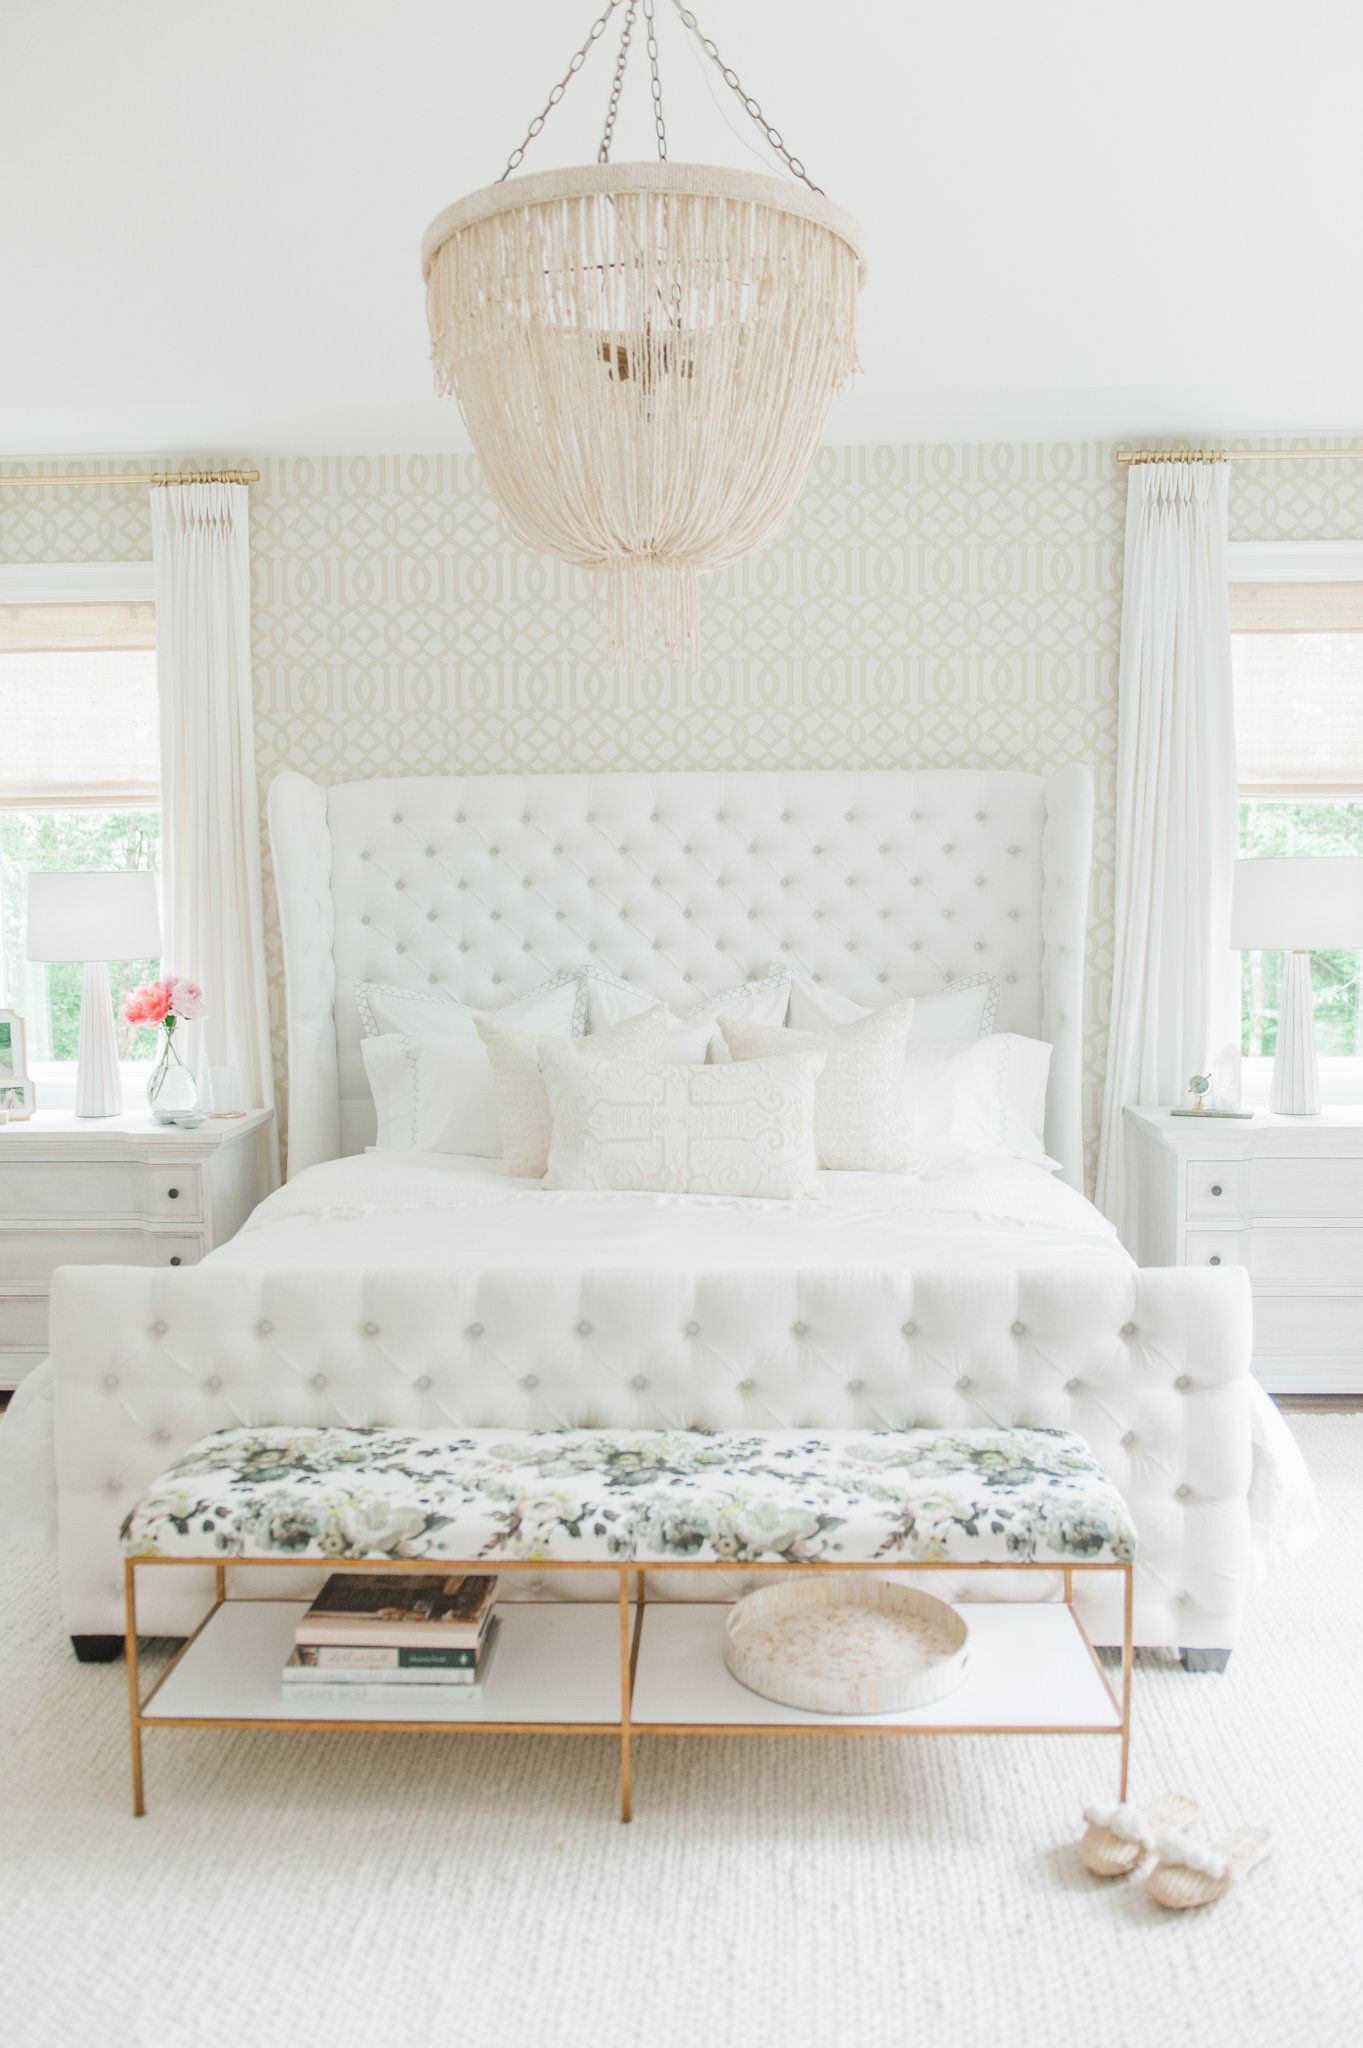 Our bedroom reveal bedrooms bright and master bedroom our bedroom reveal monika hibbs arubaitofo Image collections